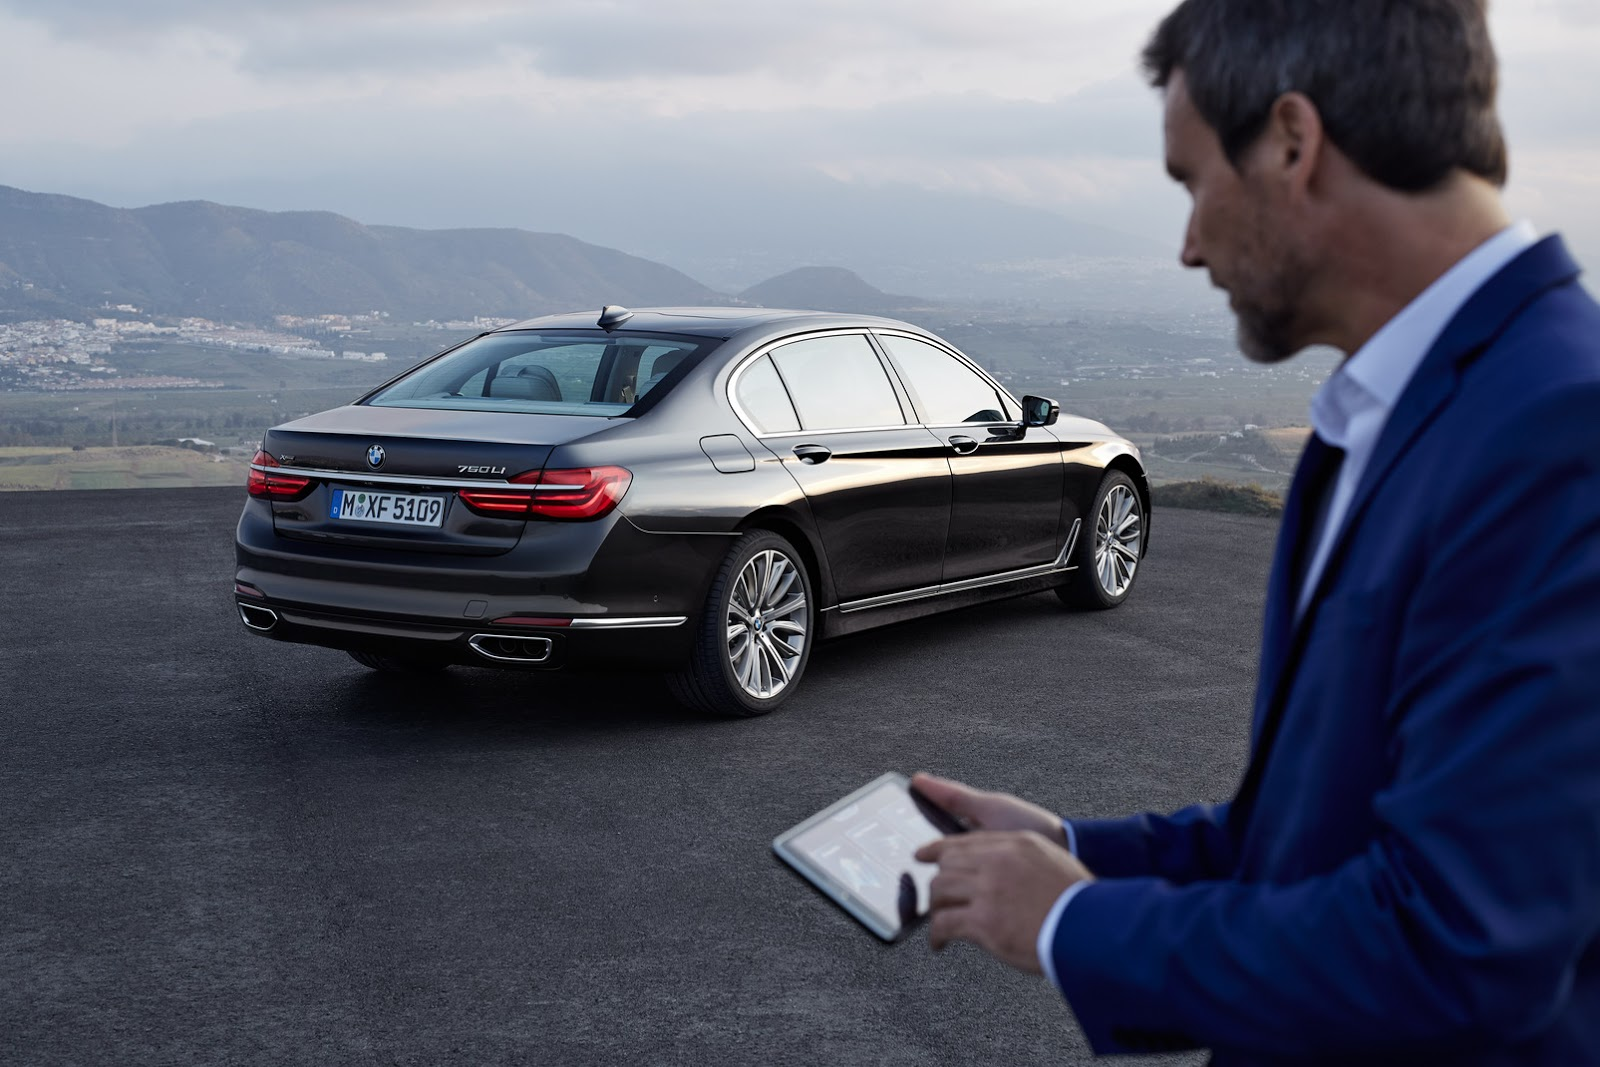 New Bmw 7 Series Has A Super Cool Key Fob With A Digital Display That Also Parks Your Car